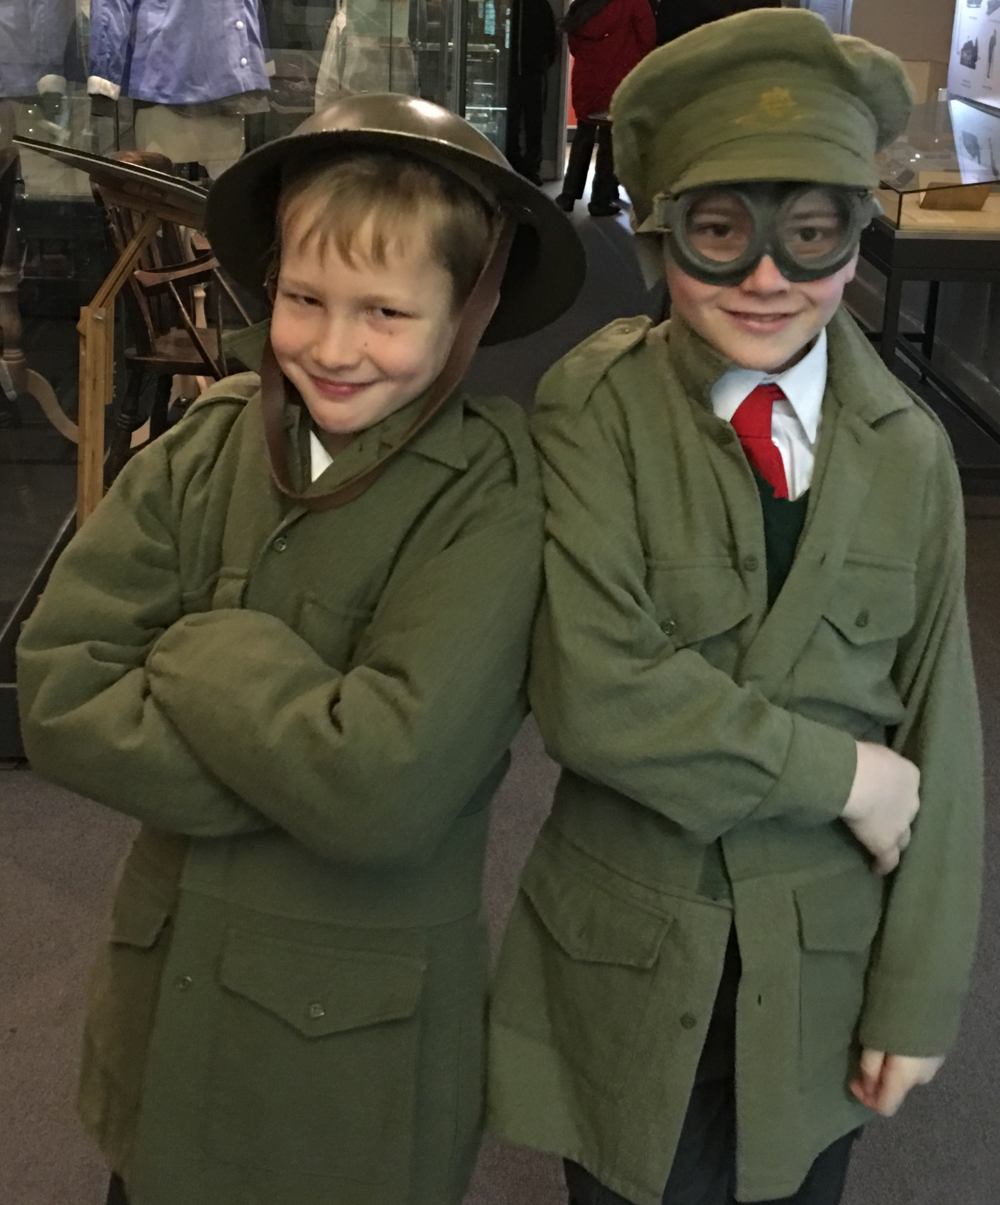 Two boys in FWW Soldier